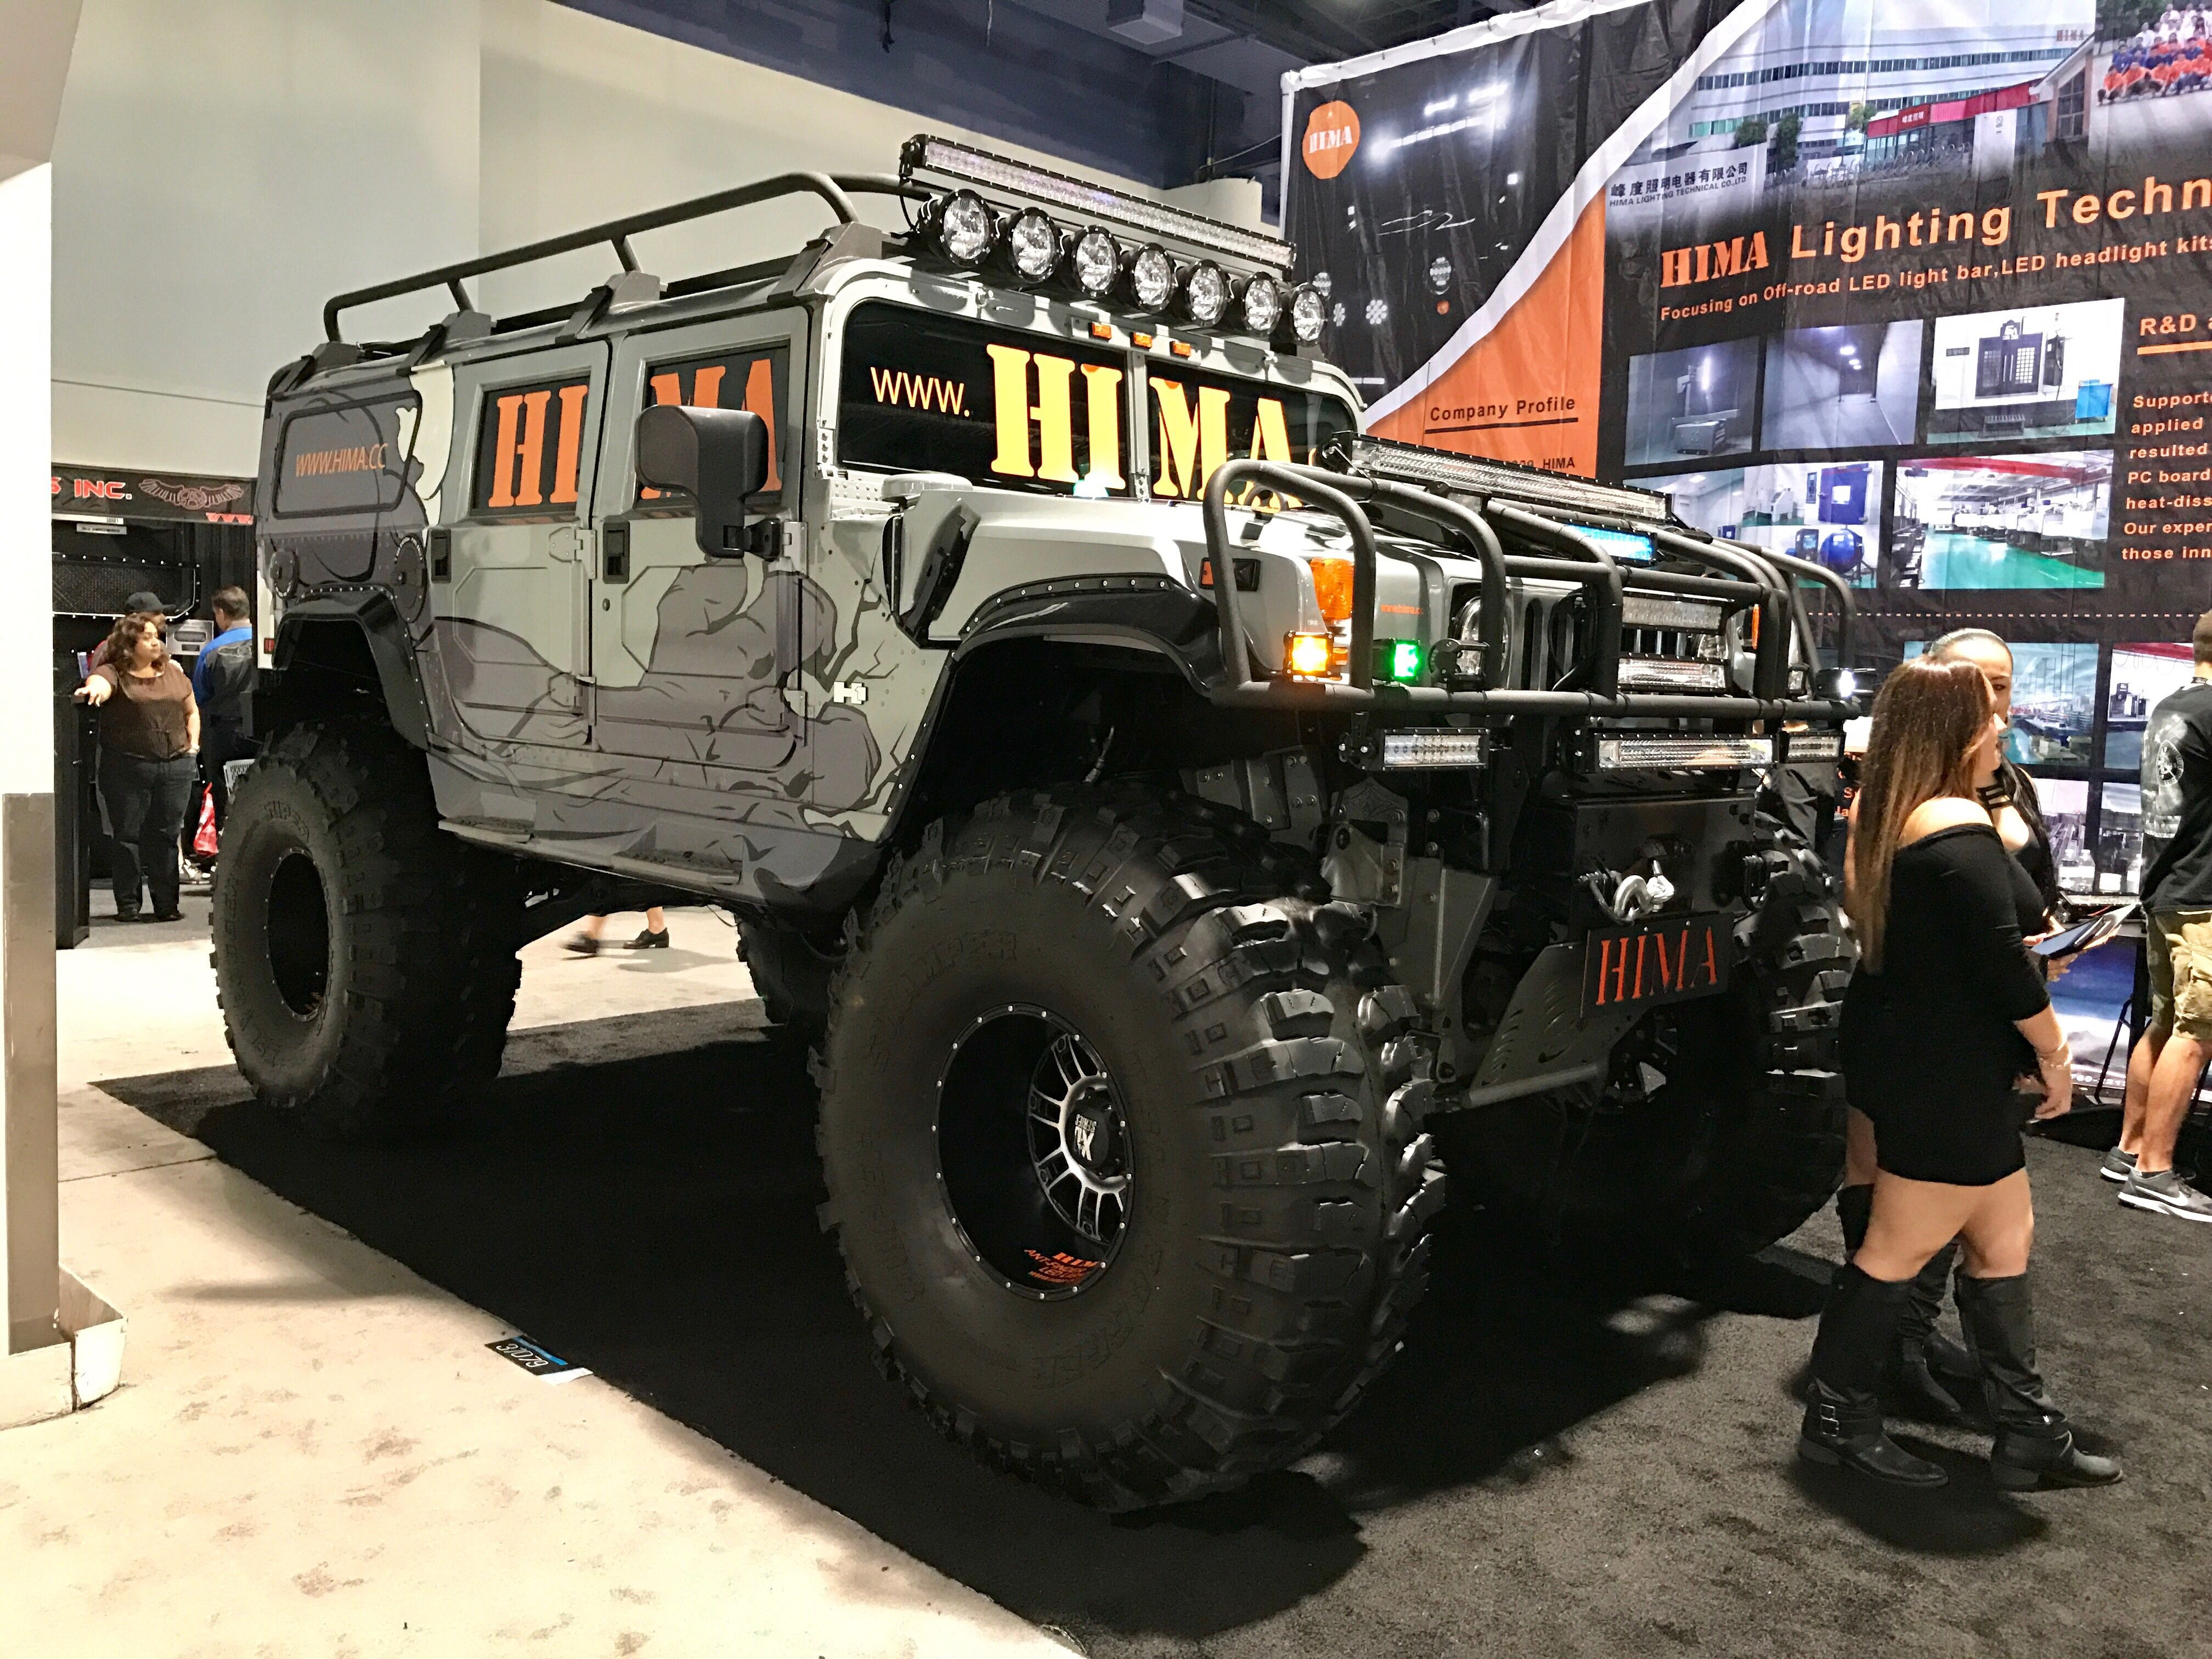 Check out this massive Hummer H1 at the HIMA Lighting booth